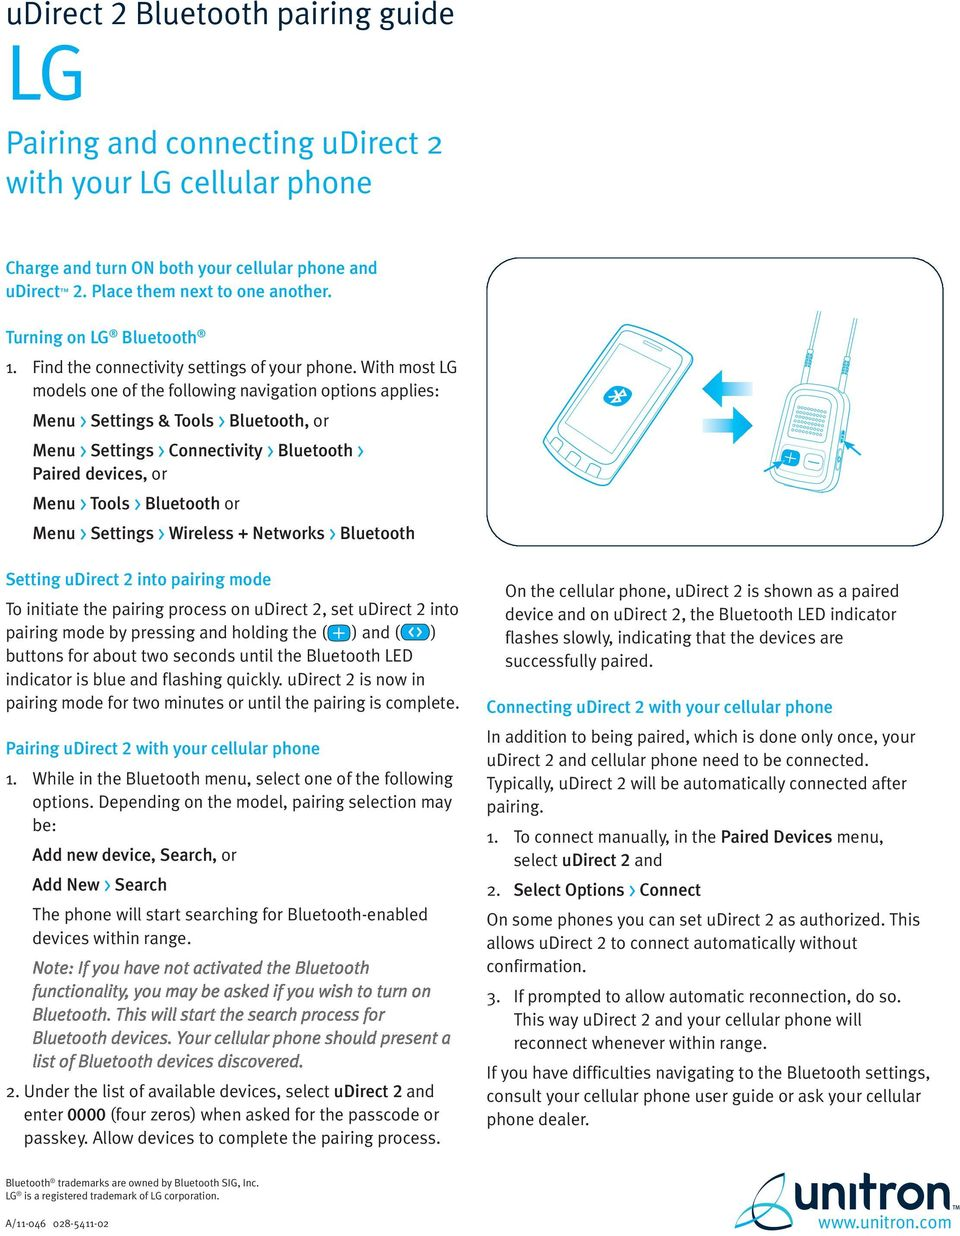 Nokia  udirect 2 Bluetooth pairing guide  Pairing and